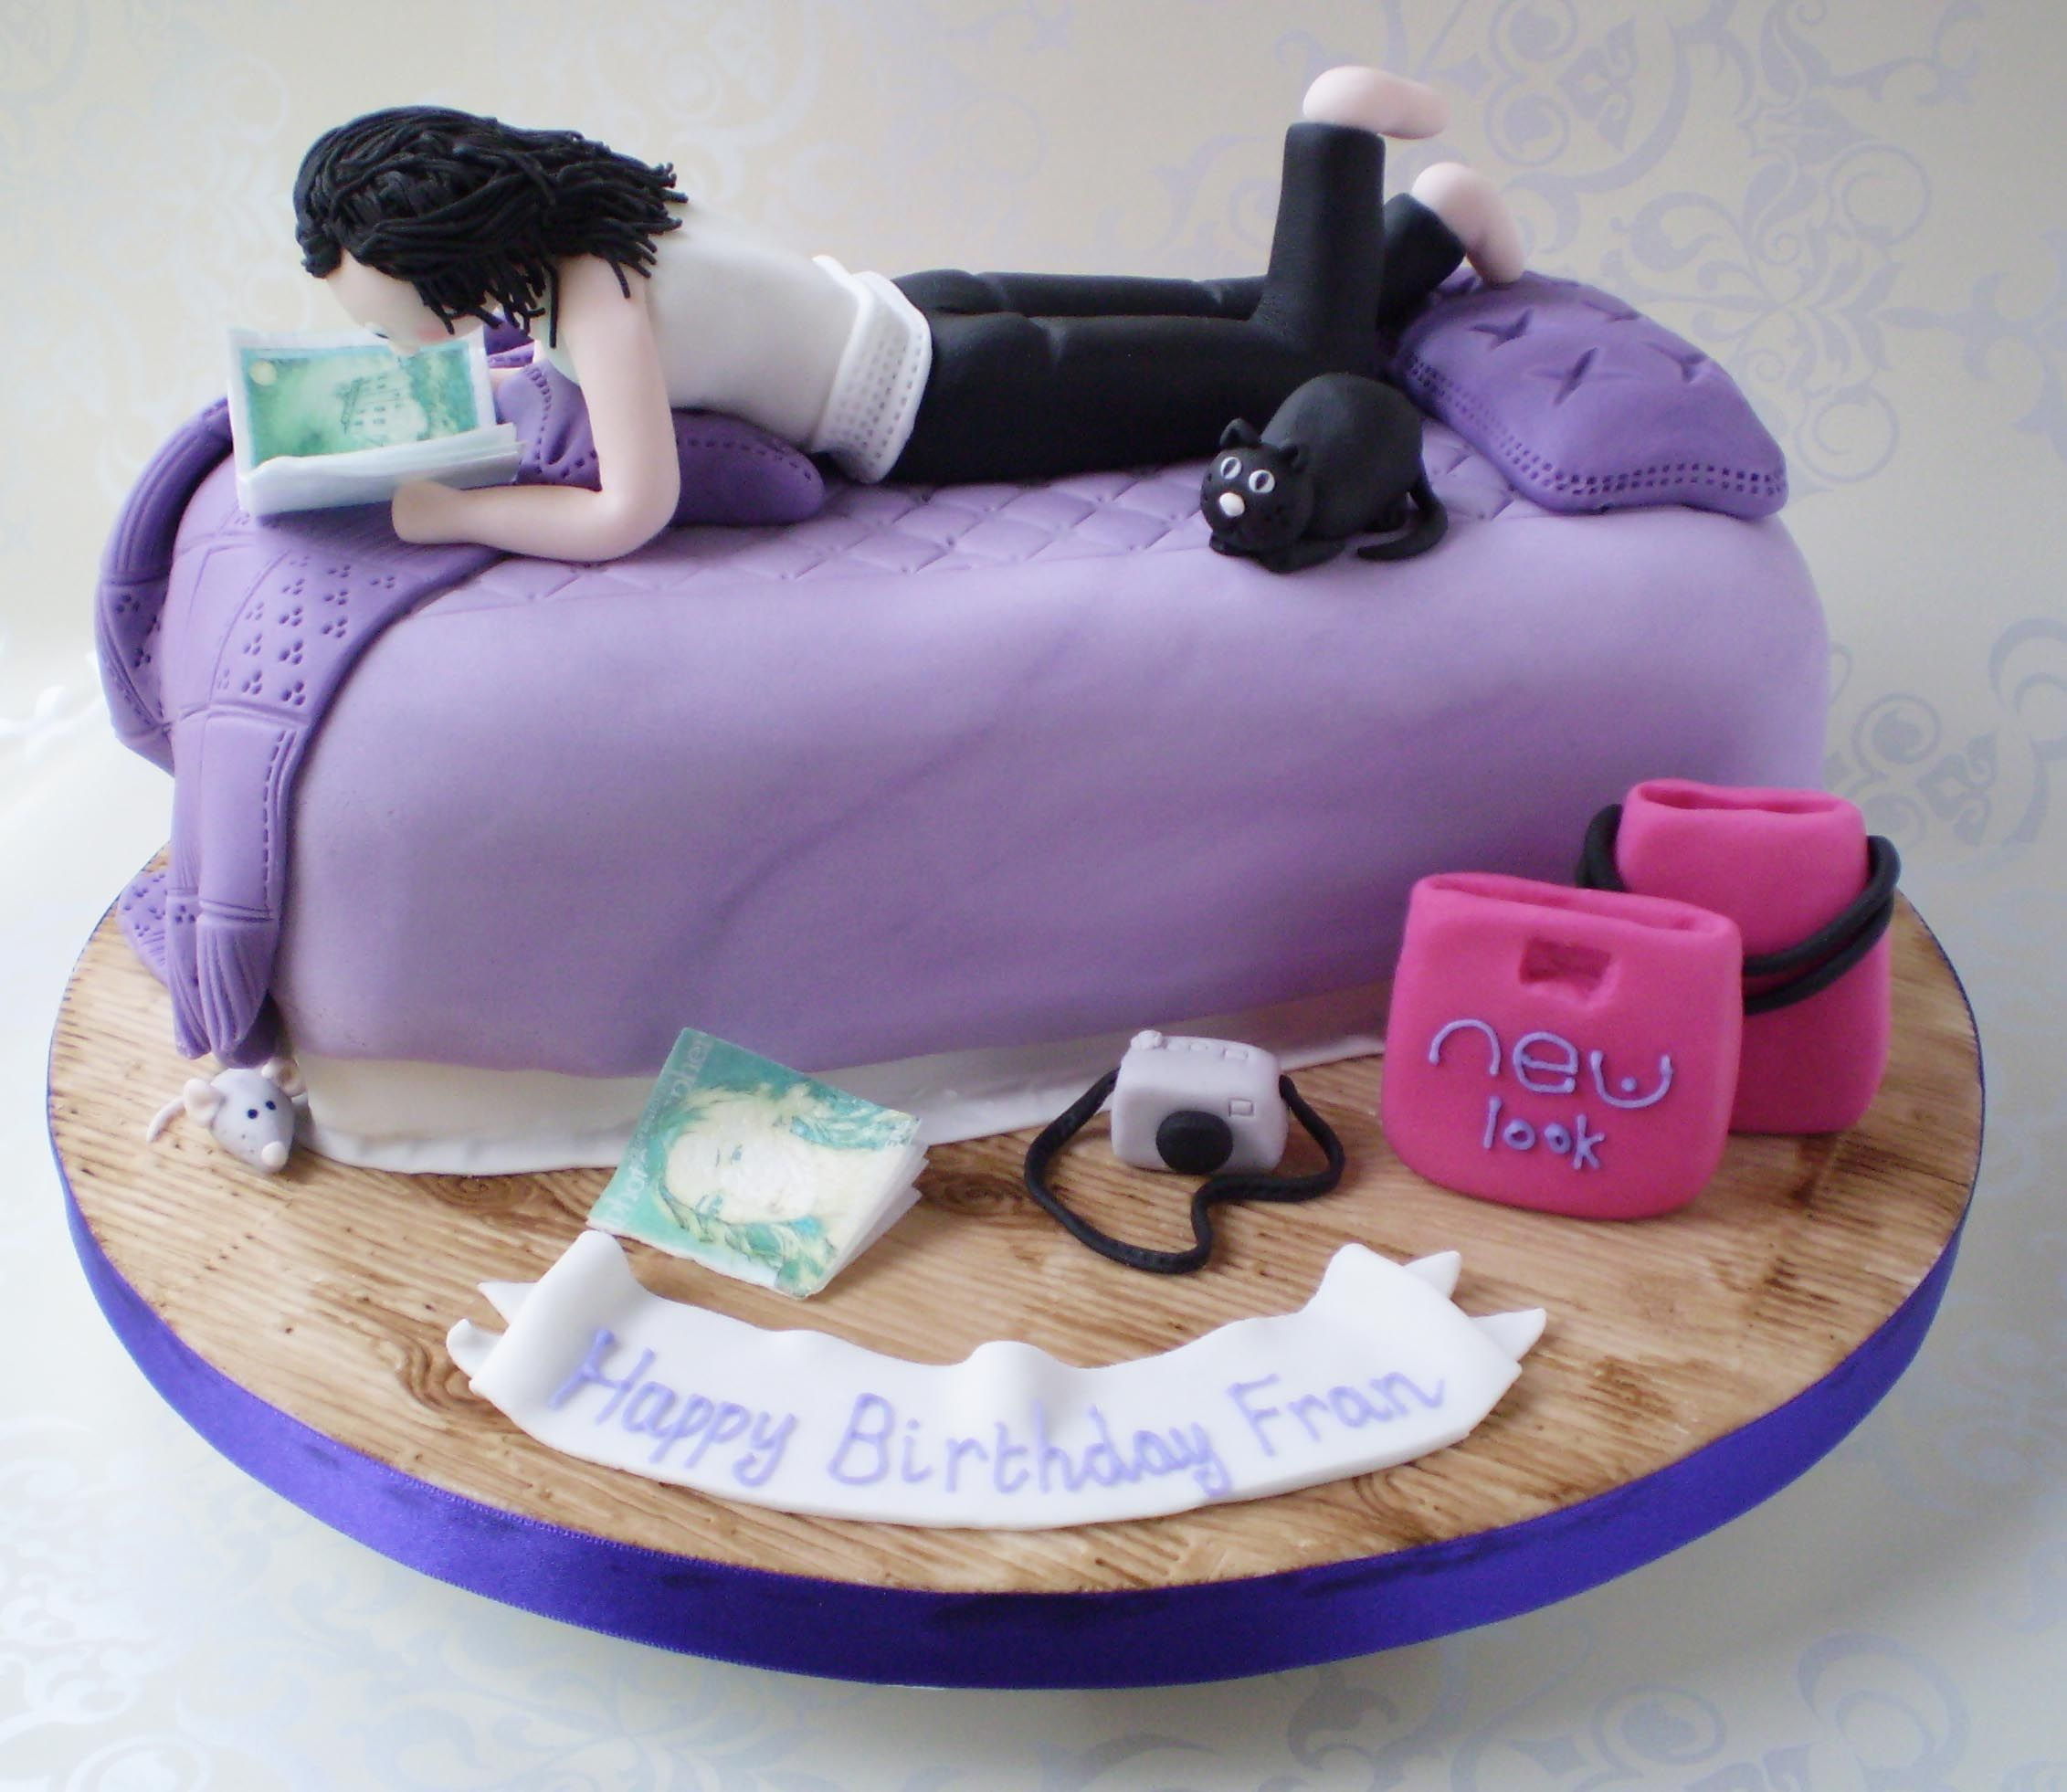 Teenagers Bedroom Birthday Cake cakepinscom Frejas vrelse